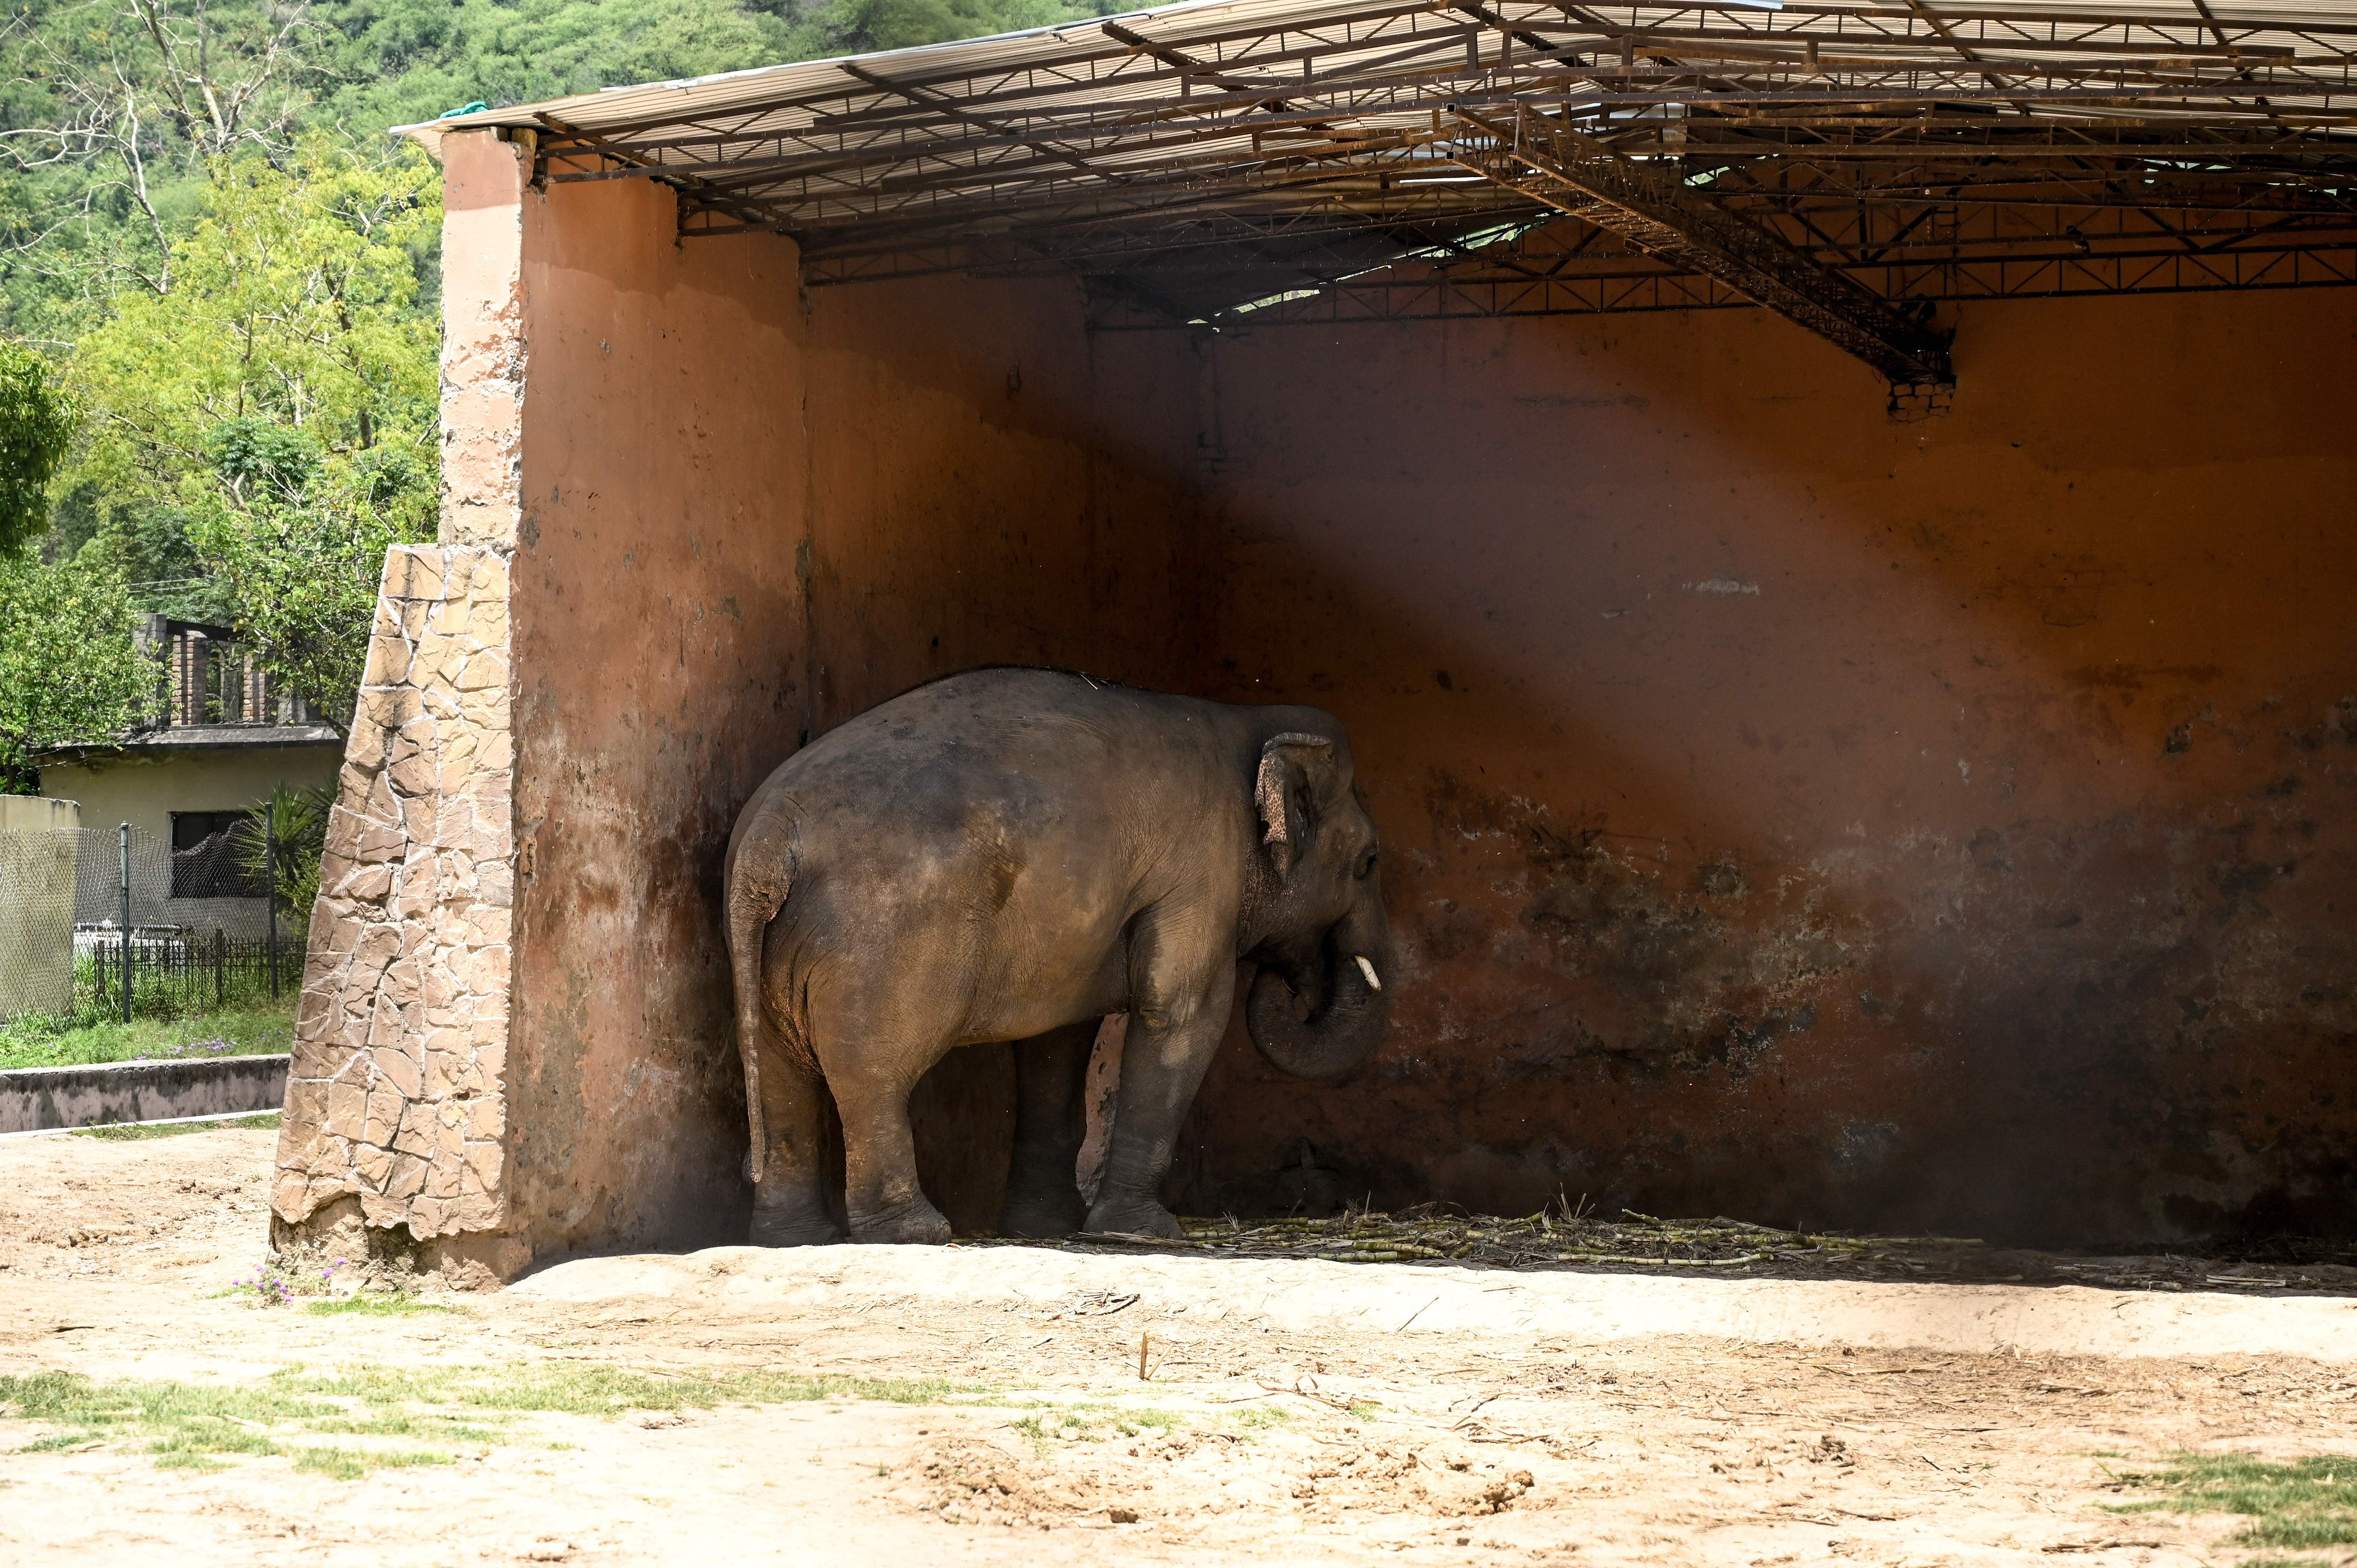 'Nobody gave a damn': The ghosts of a neglectful, abusive zoo - independent